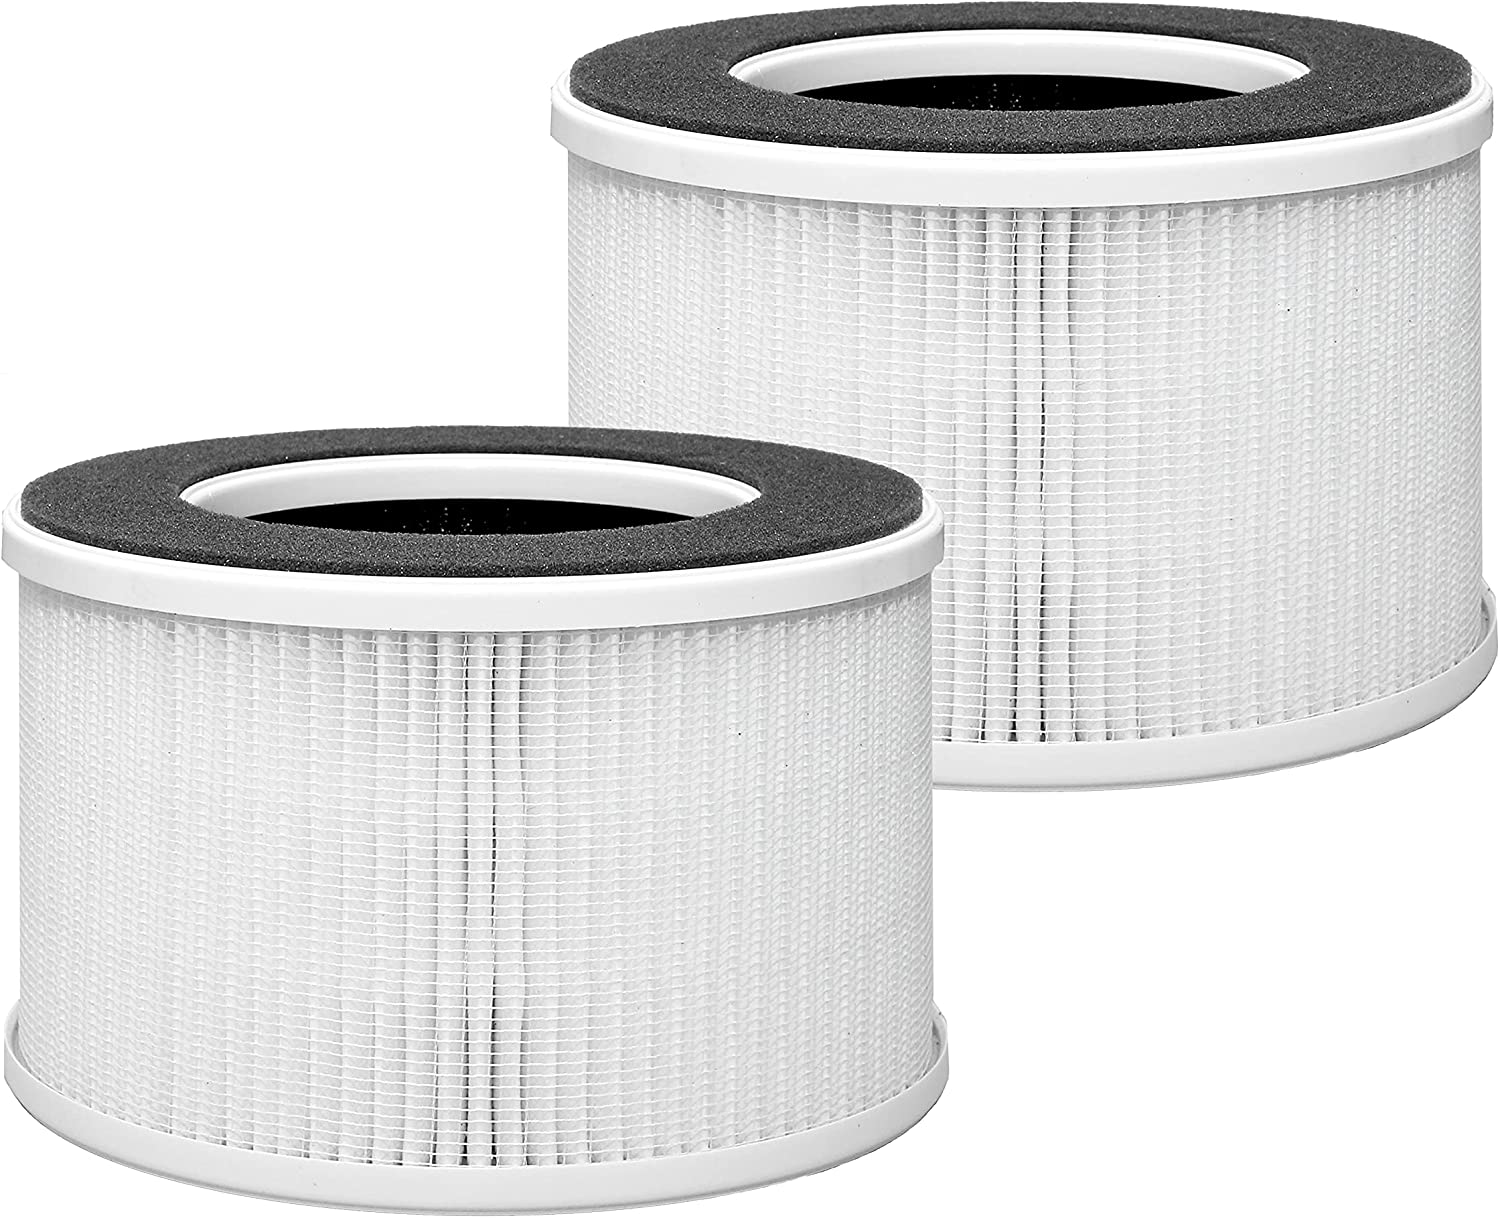 Lhari True HEPA Replacement Filter HME020020N compatible with hOmeLabs 4-in-1 Compact HEPA Air Purifier, AK050GE, Remove Allergens and Odors, 2-pack